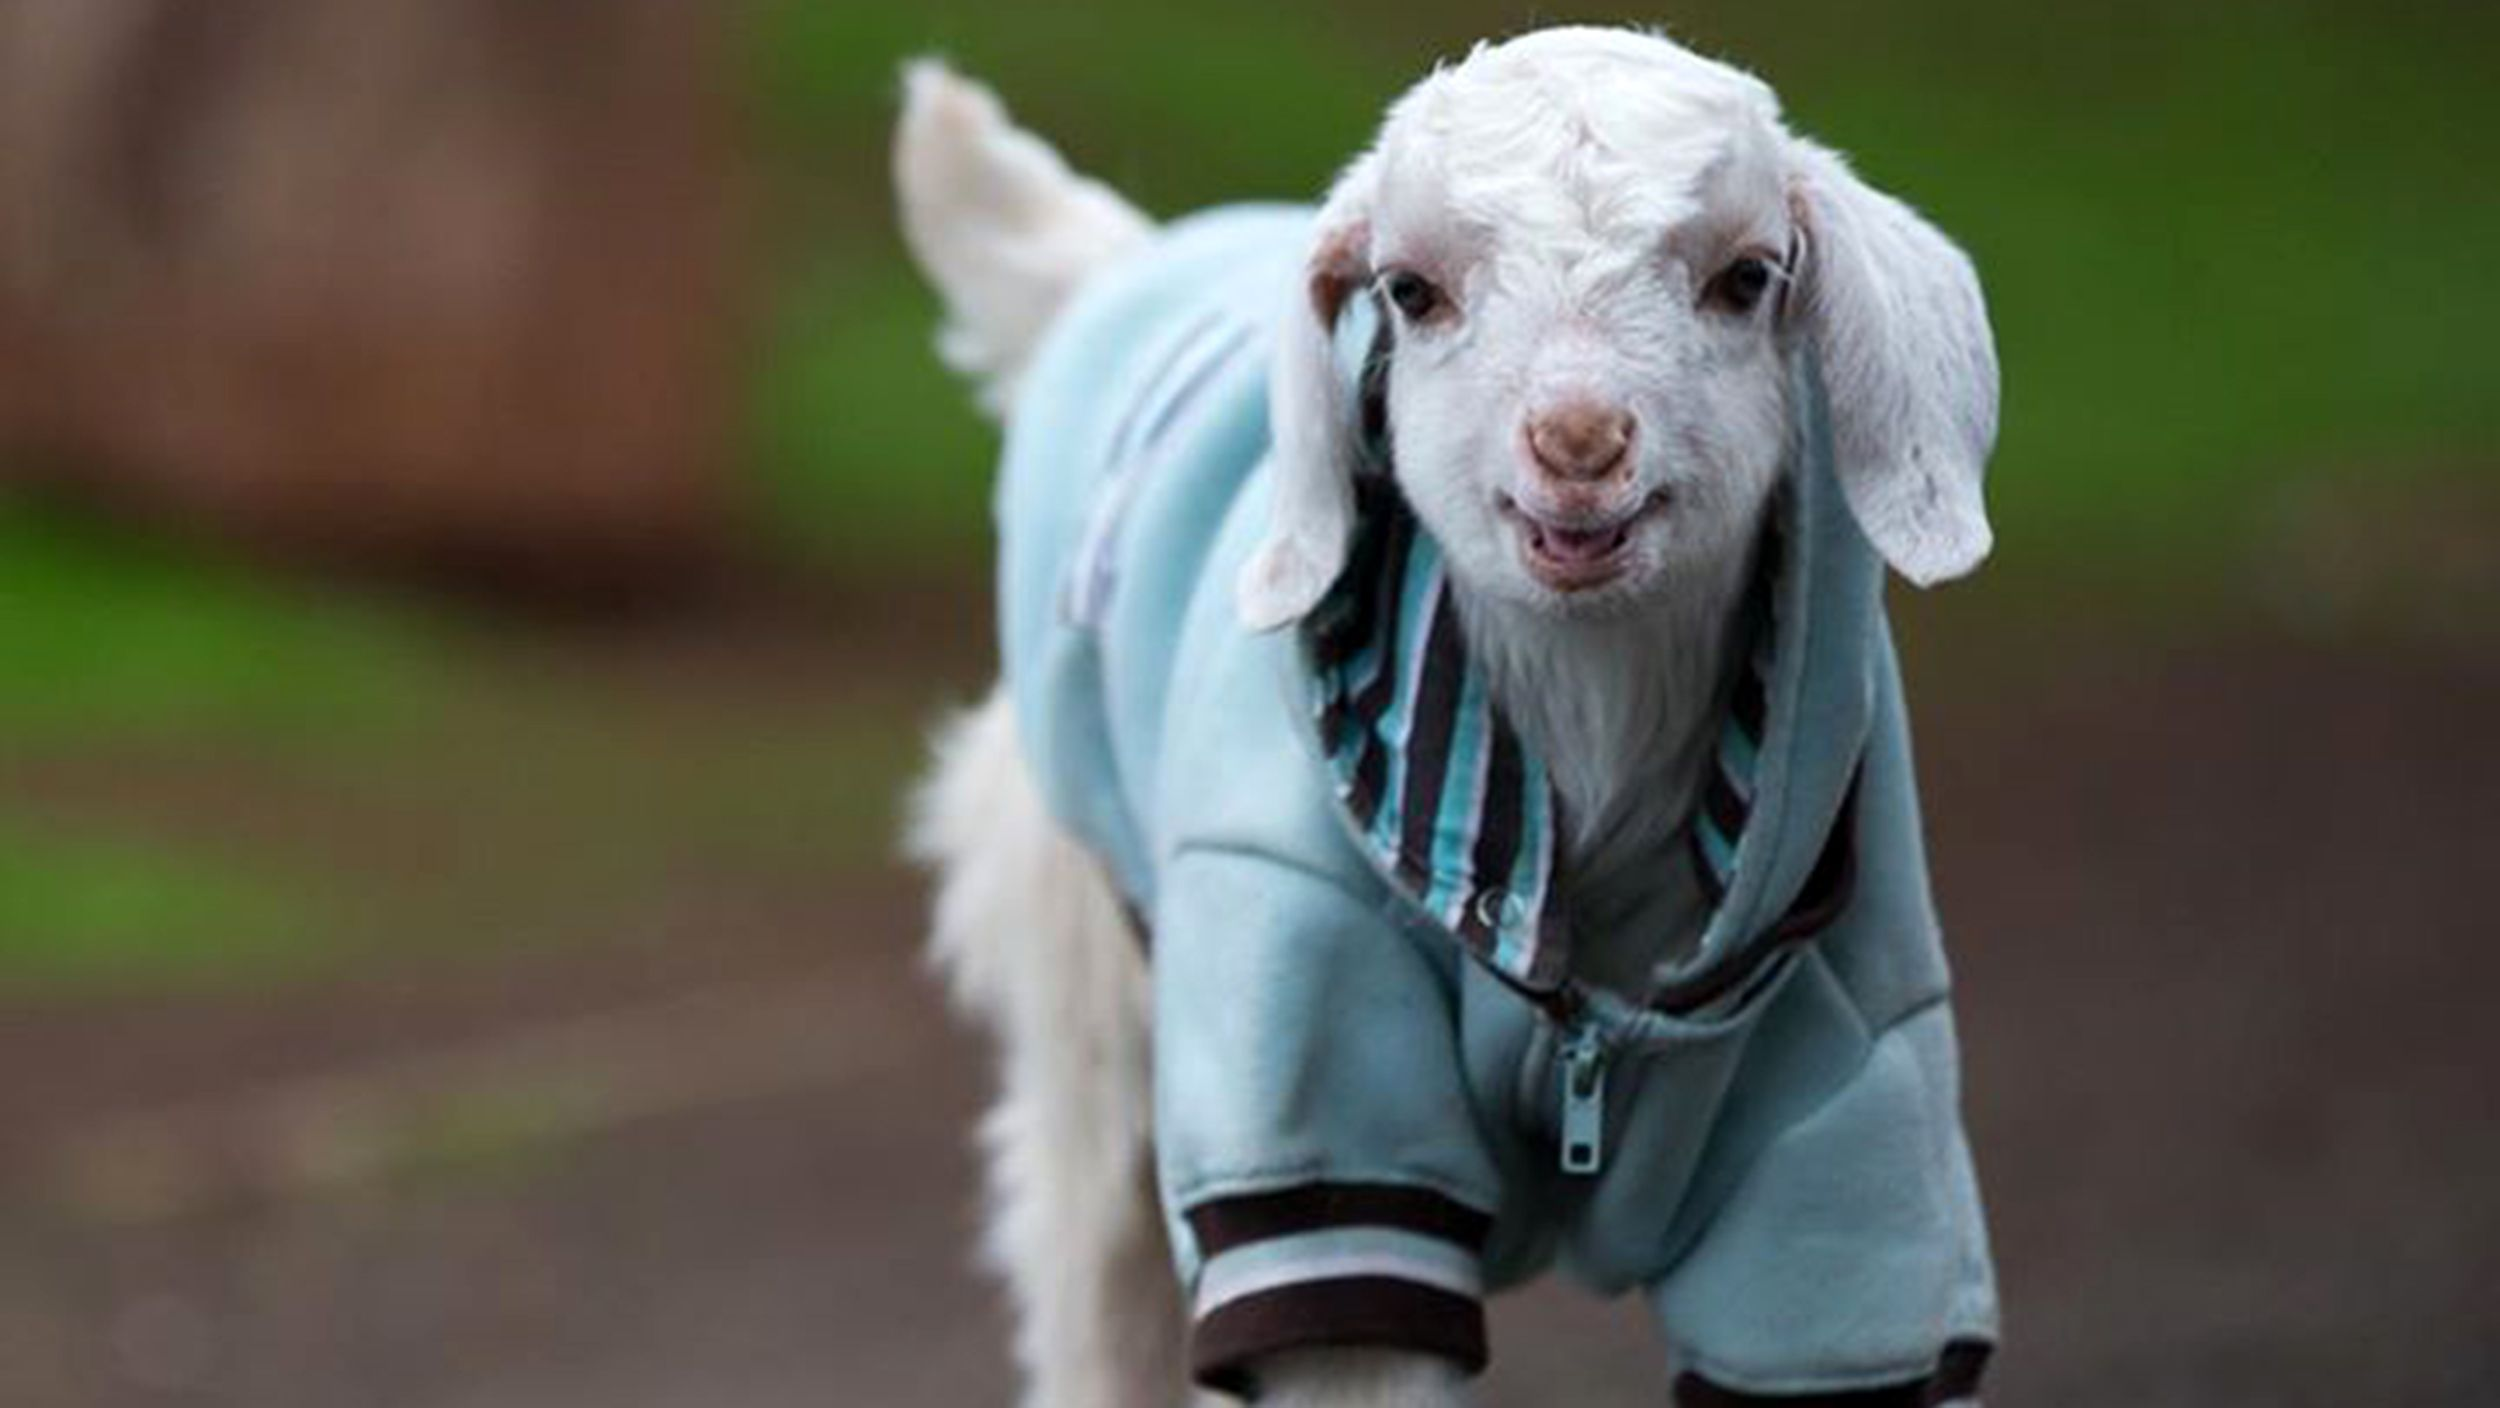 Frostie The Goat Learns To Walk Skip And Run Without Wheelchair Baby Goat Pictures Goats Baby Goats